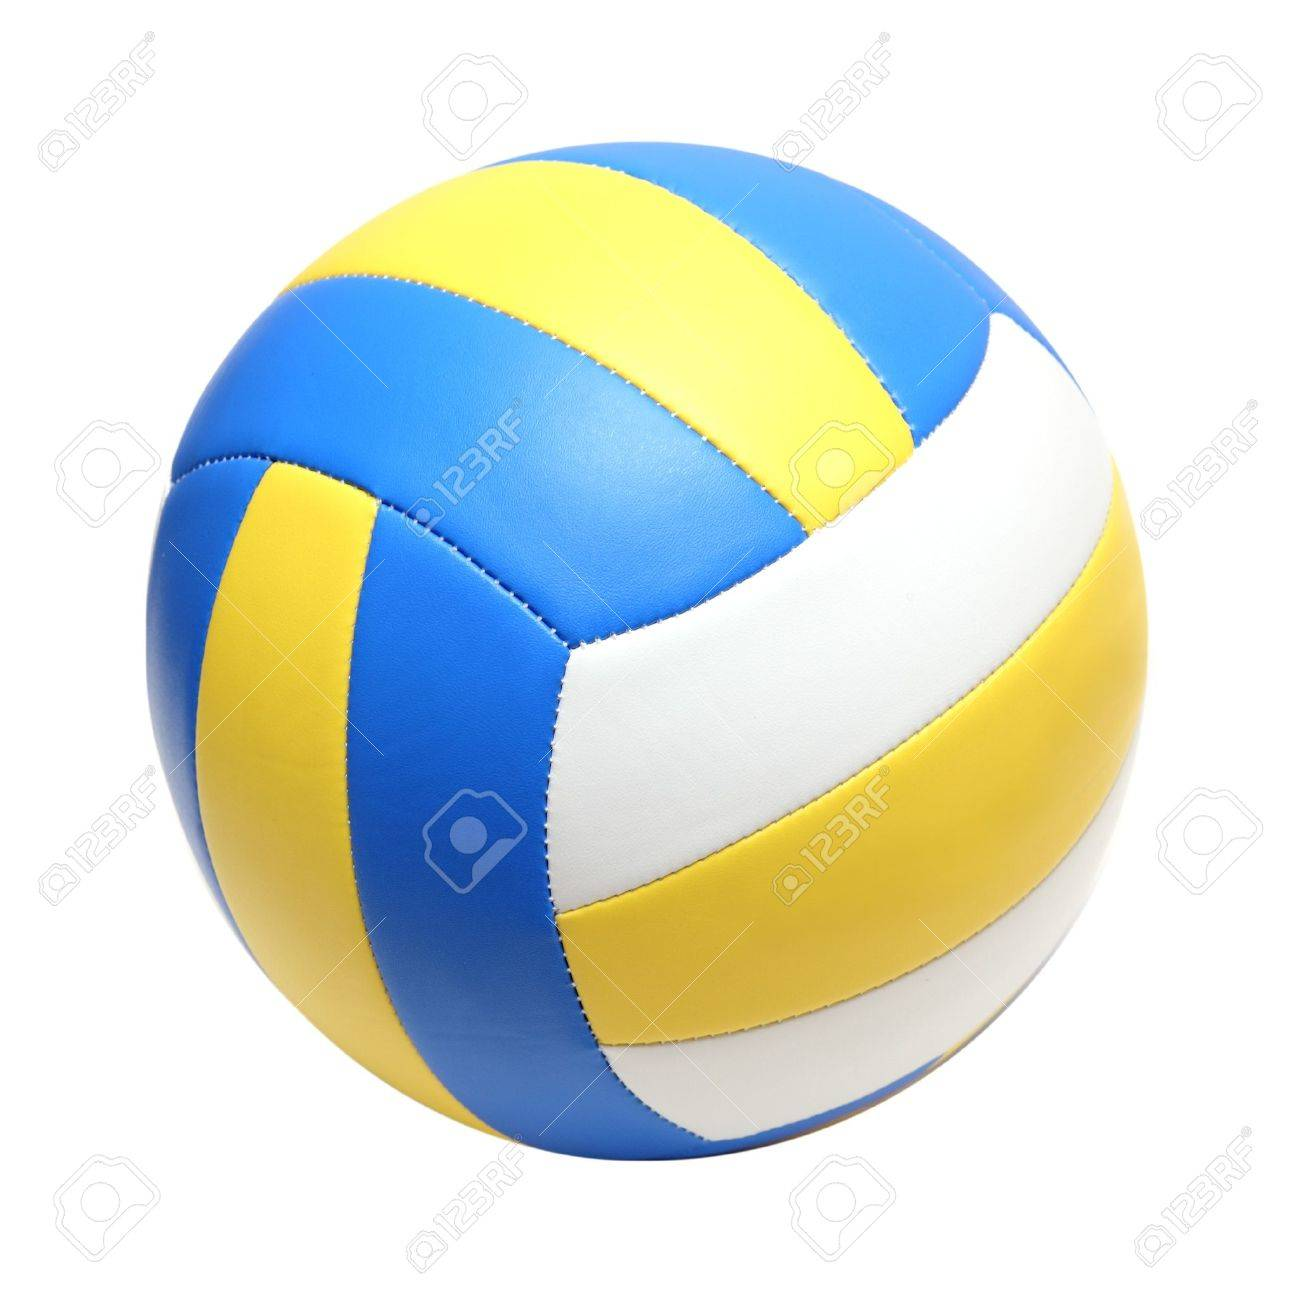 leather color volleyball ball isolated on white - 11017923